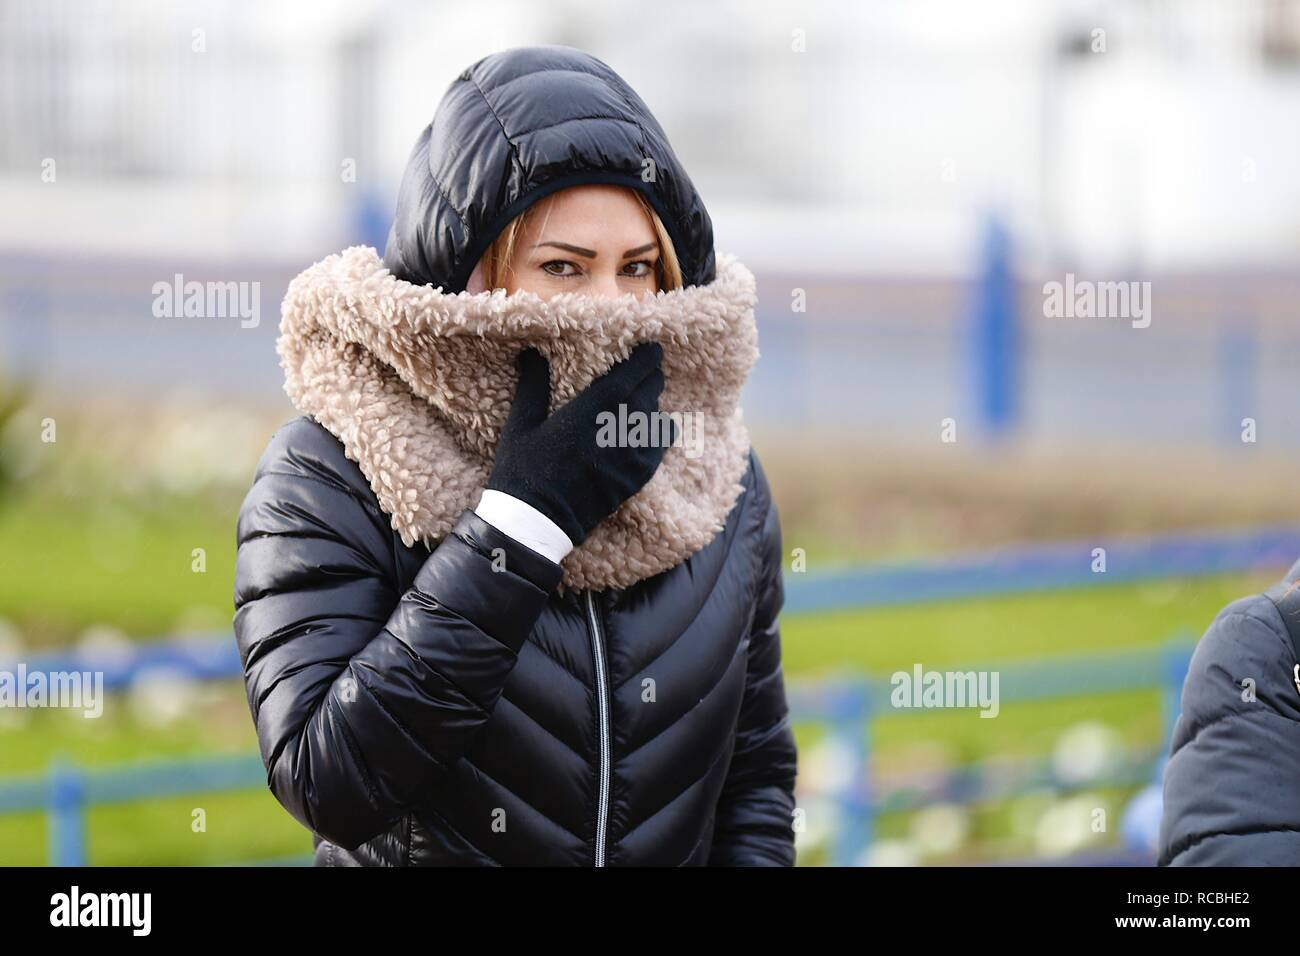 Eastbourne, East Sussex, UK. 15 Jan, 2019. UK Weather: A bright but chilly mid morning in Eastbourne on the seafront promenade with people jogging and taking a walk enjoying the dry weather.  © Paul Lawrenson 2018, Photo Credit: Paul Lawrenson / Alamy Live NewsStock Photo